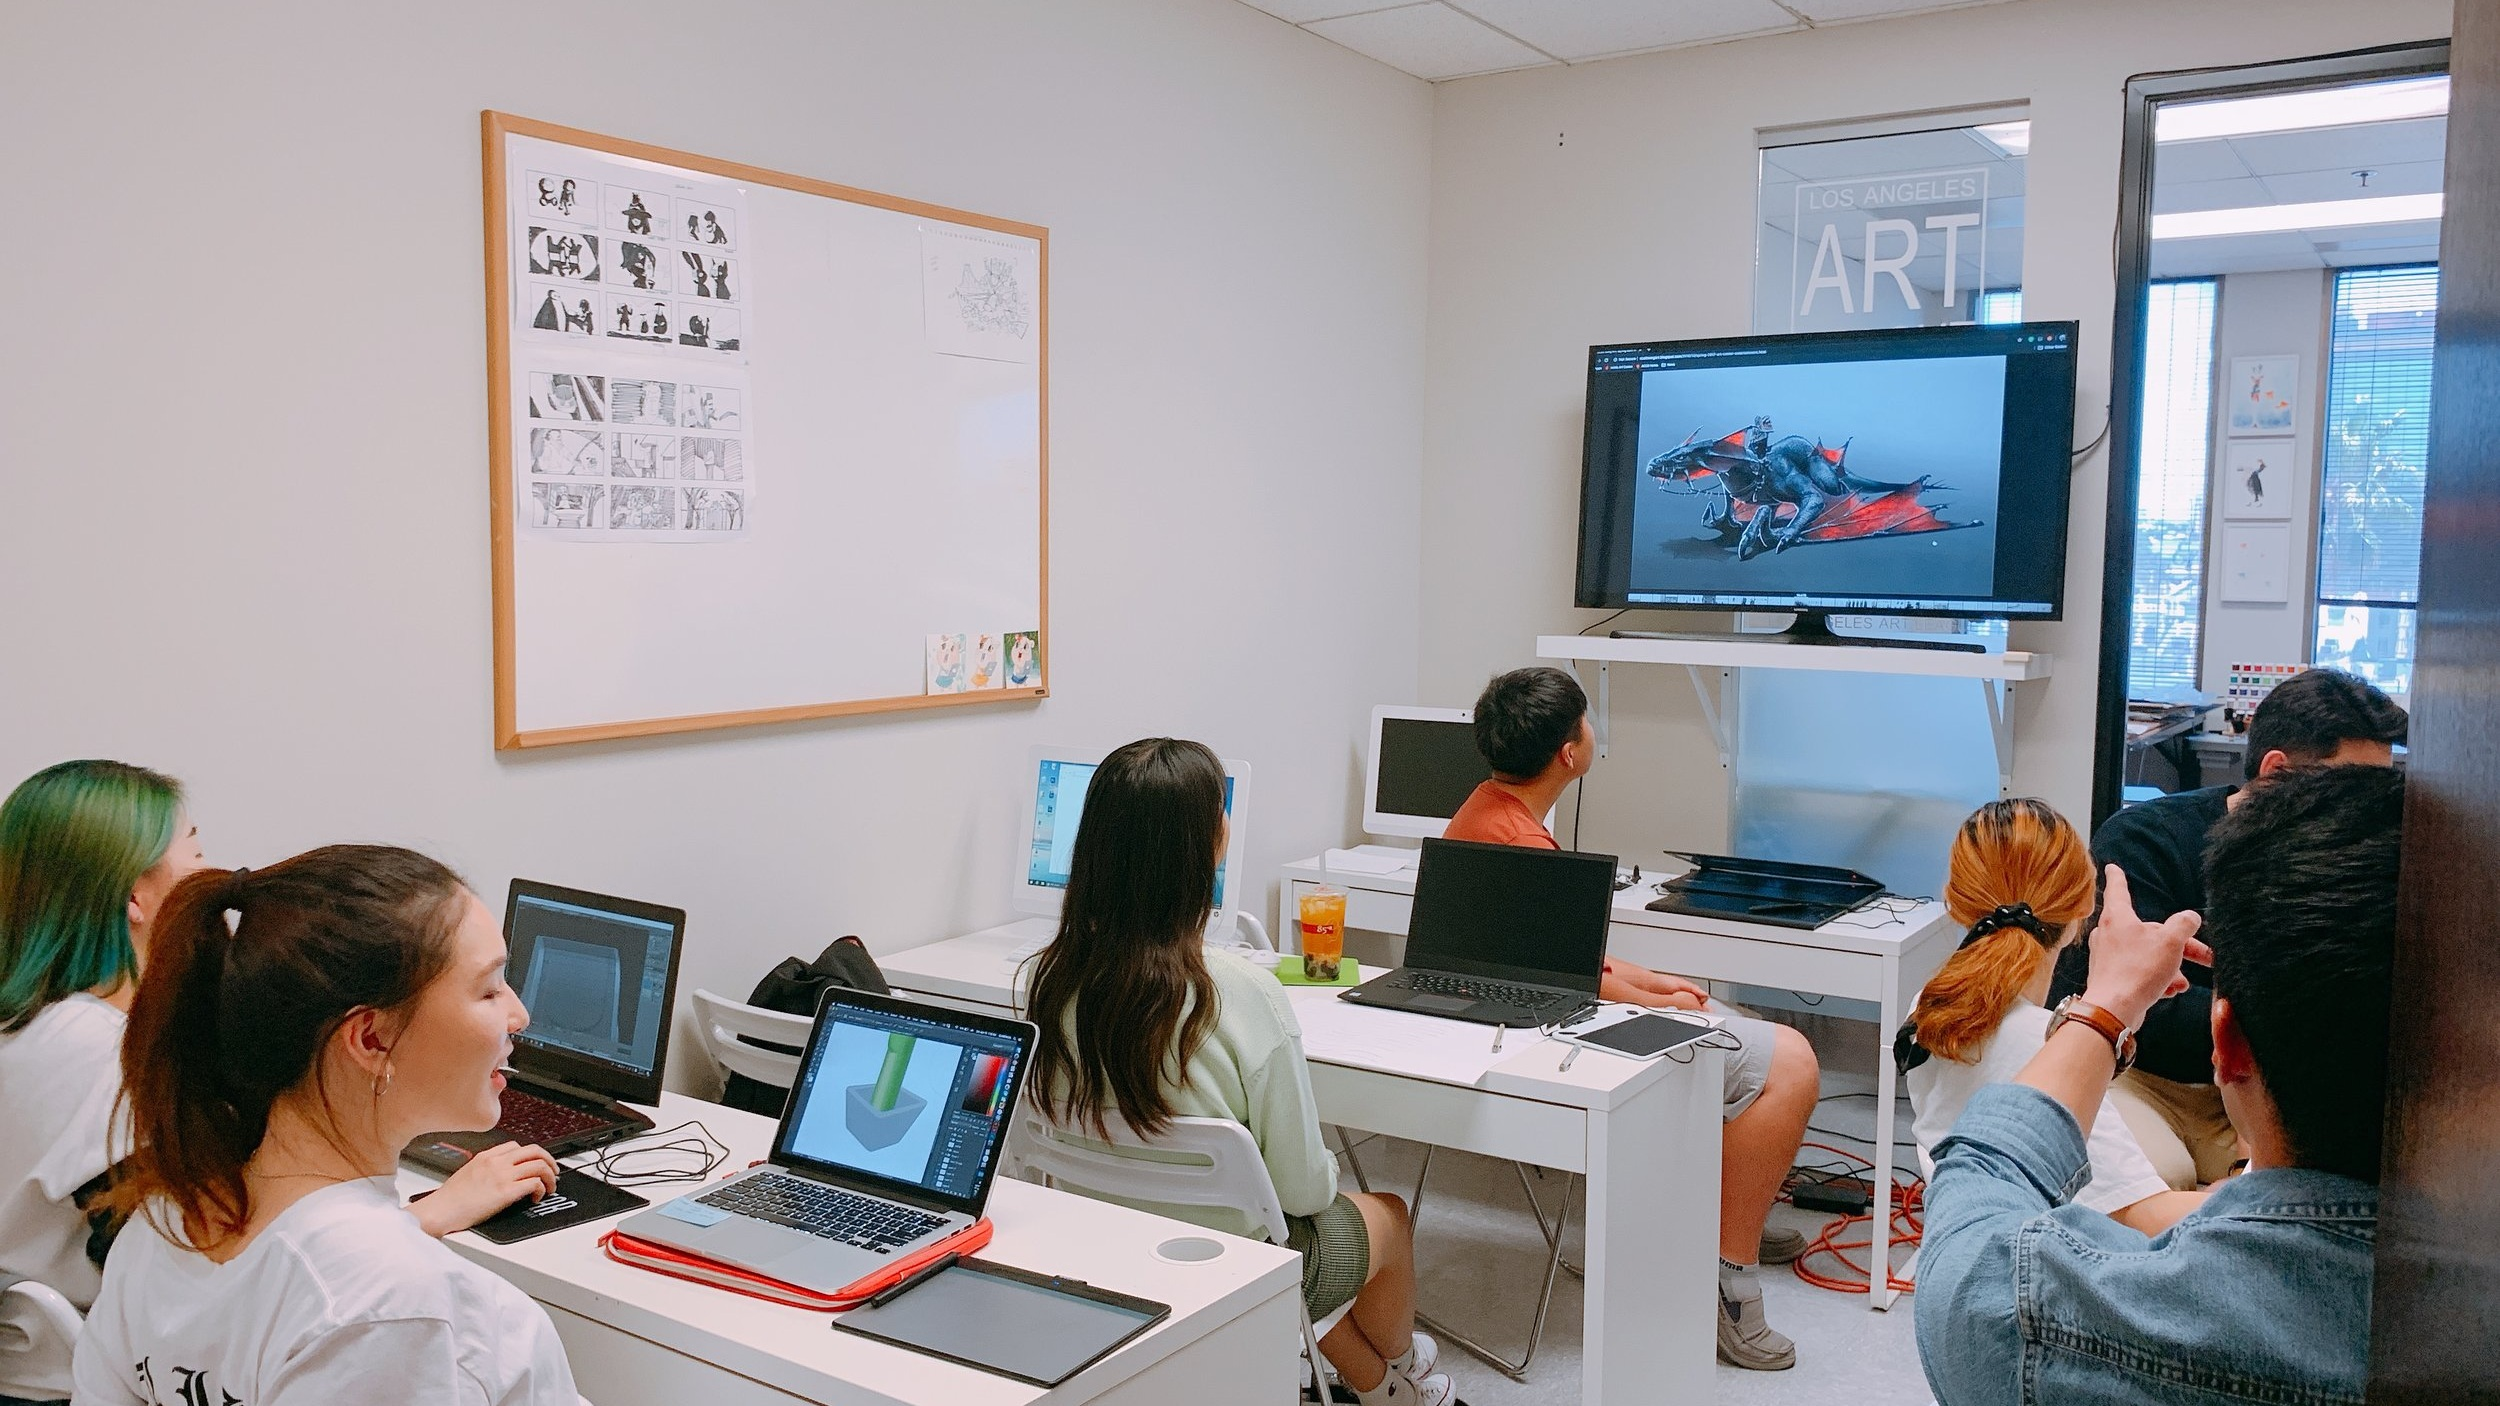 DIGITAL ARTS CLASS - Students will learn how to do the basics of Adobe Photoshop, Illustrator, InDesign, etc